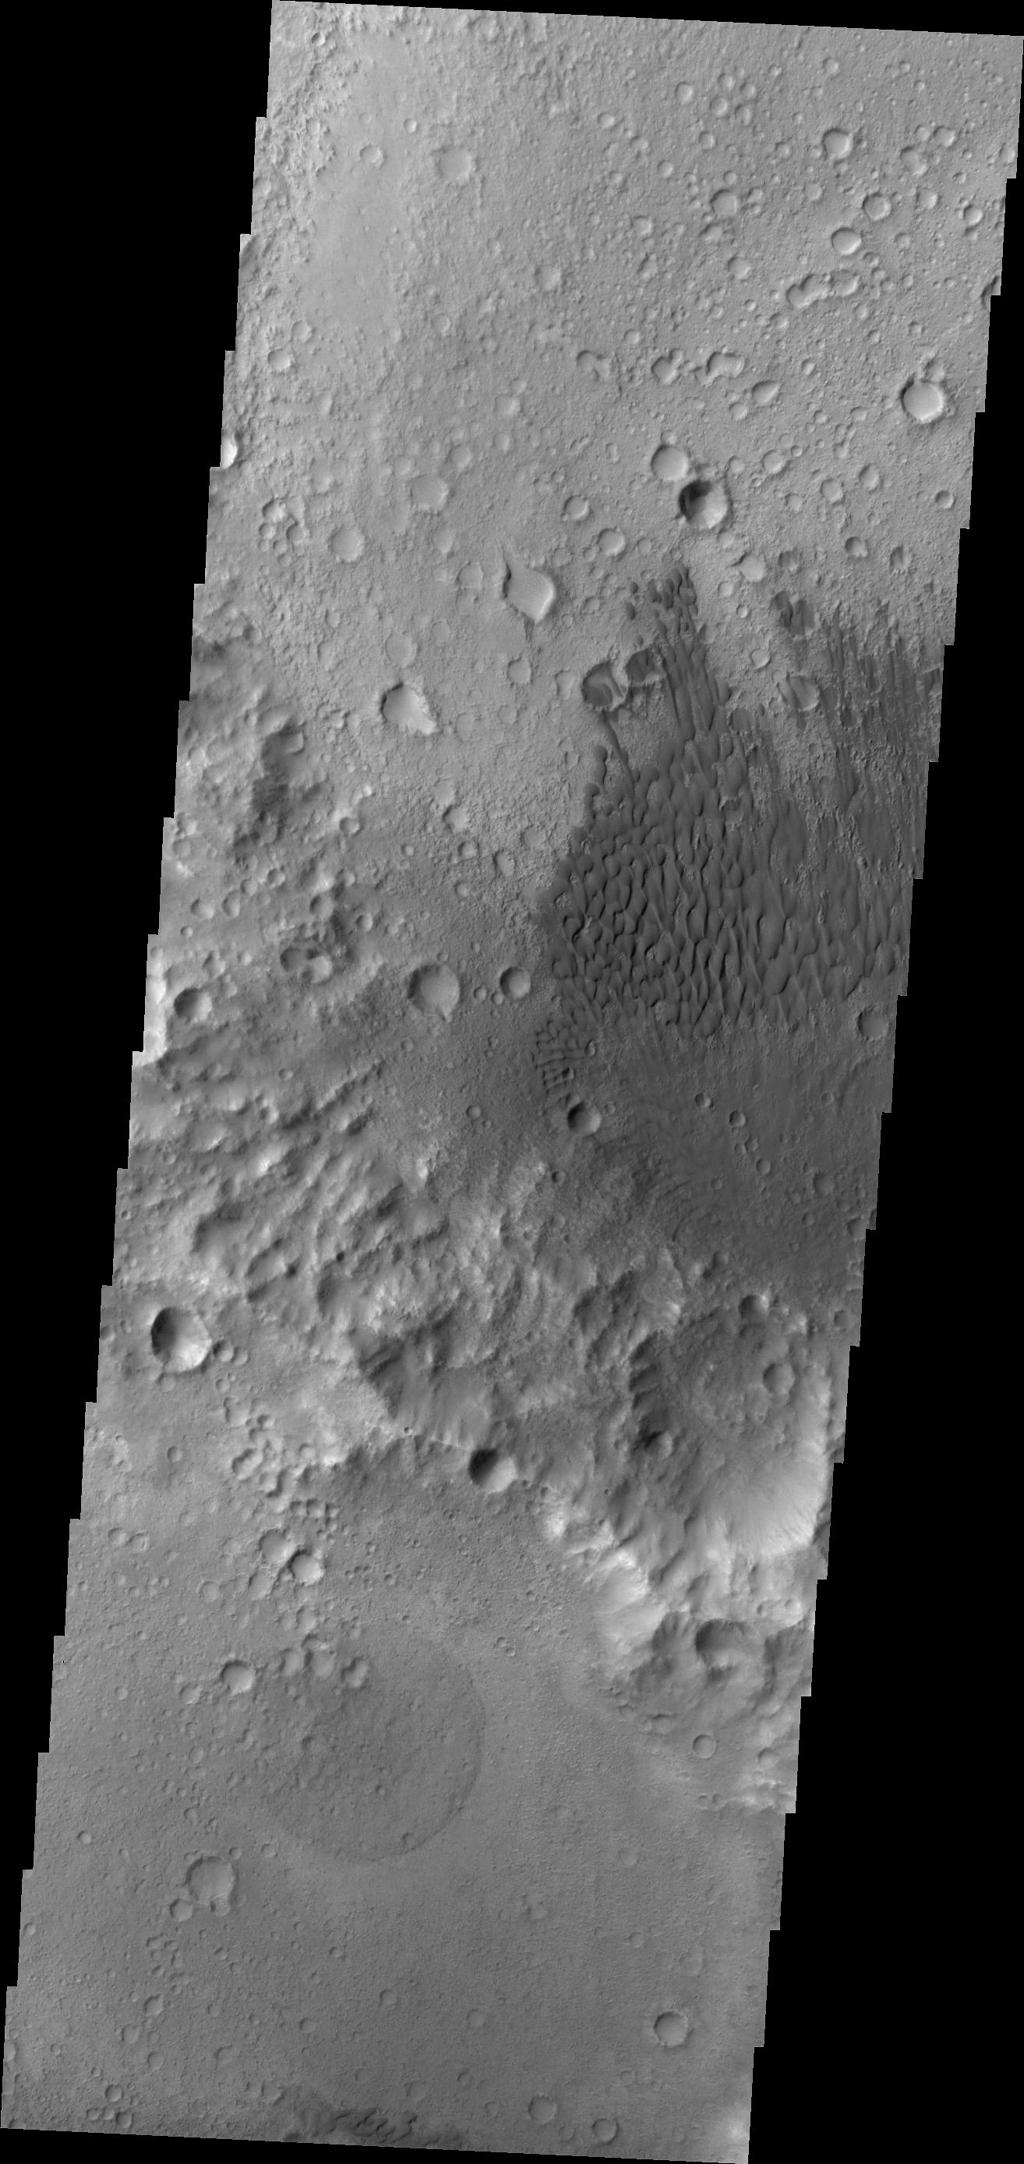 The dunes in this image are located on the floor of an unnamed crater in Tyrrhena Terra as seen by NASA's 2001 Mars Odyssey spacecraft.